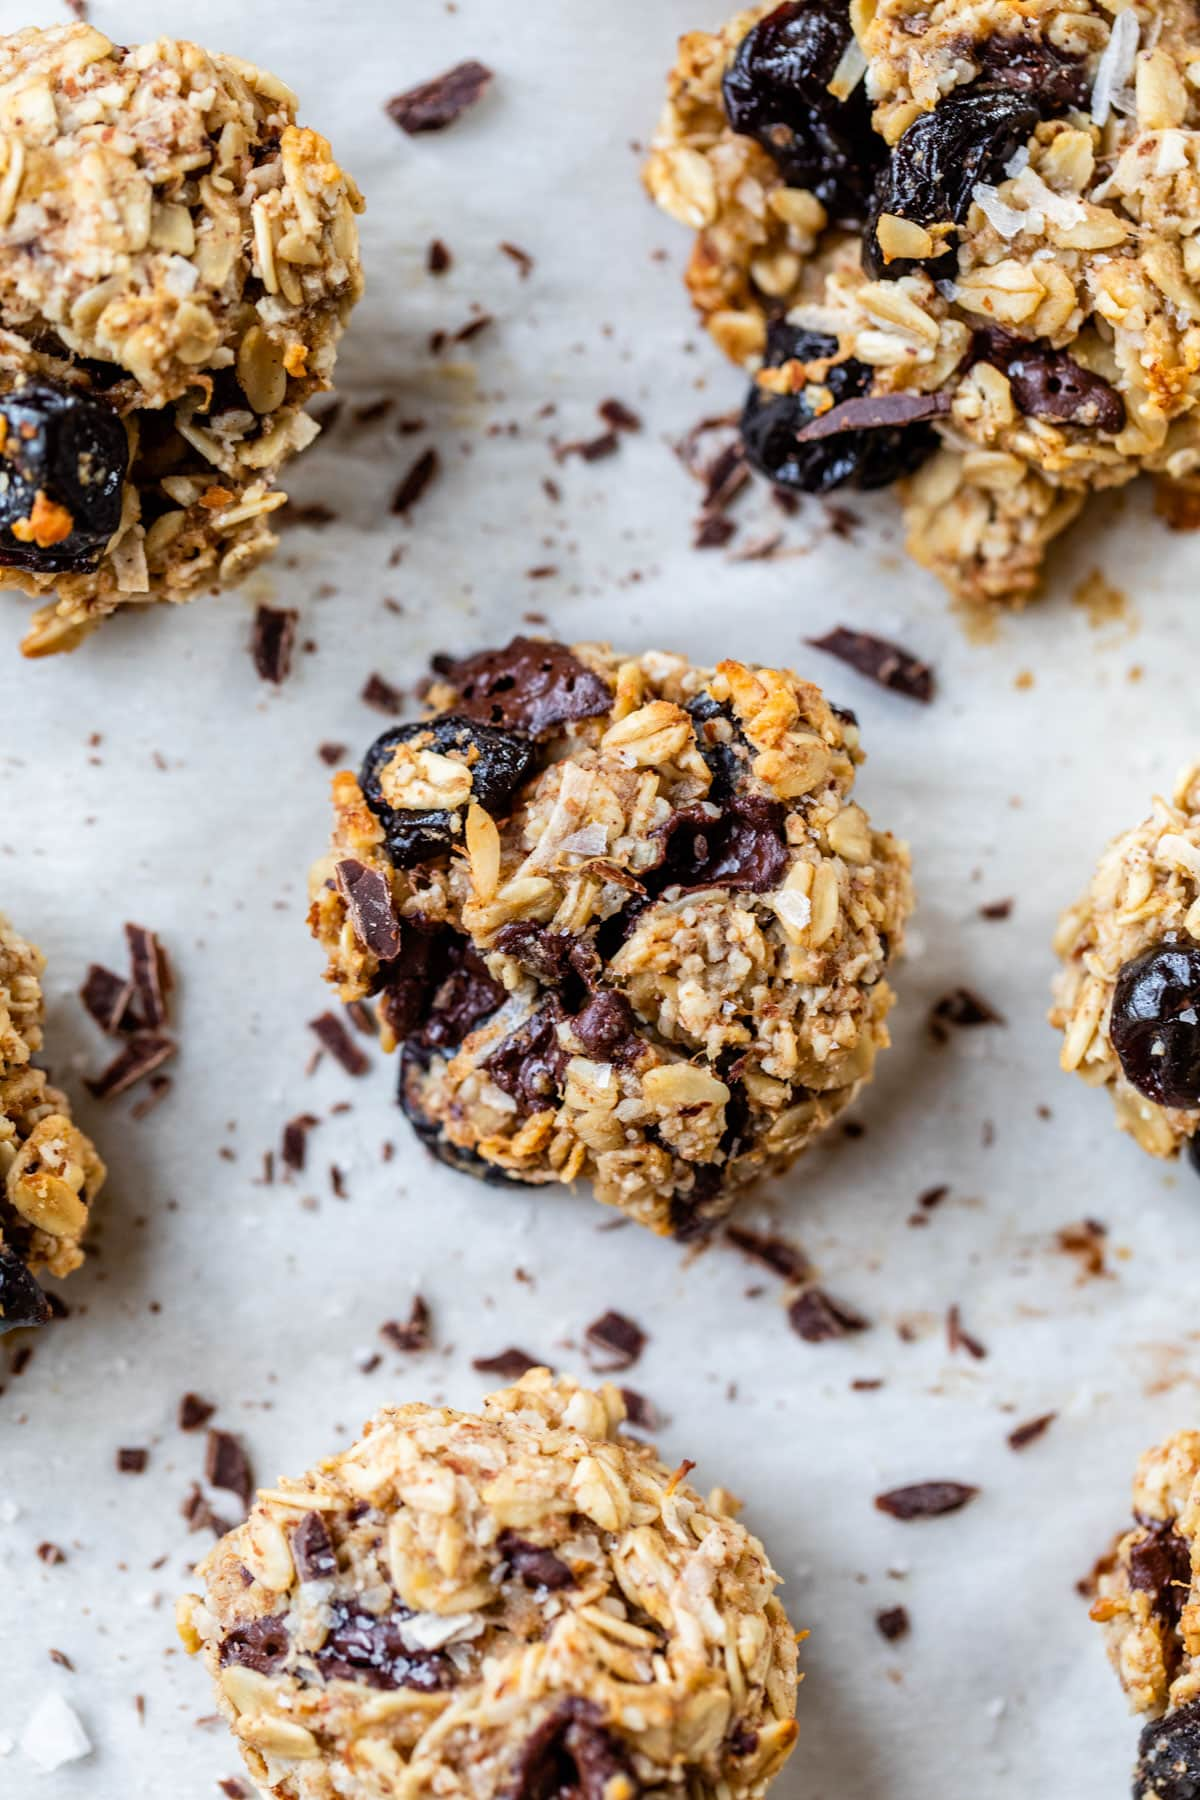 FINALLY a healthy cookie that tastes great! Dark Chocolate Cherry Snack Cookies. {Vegan and gluten free!}